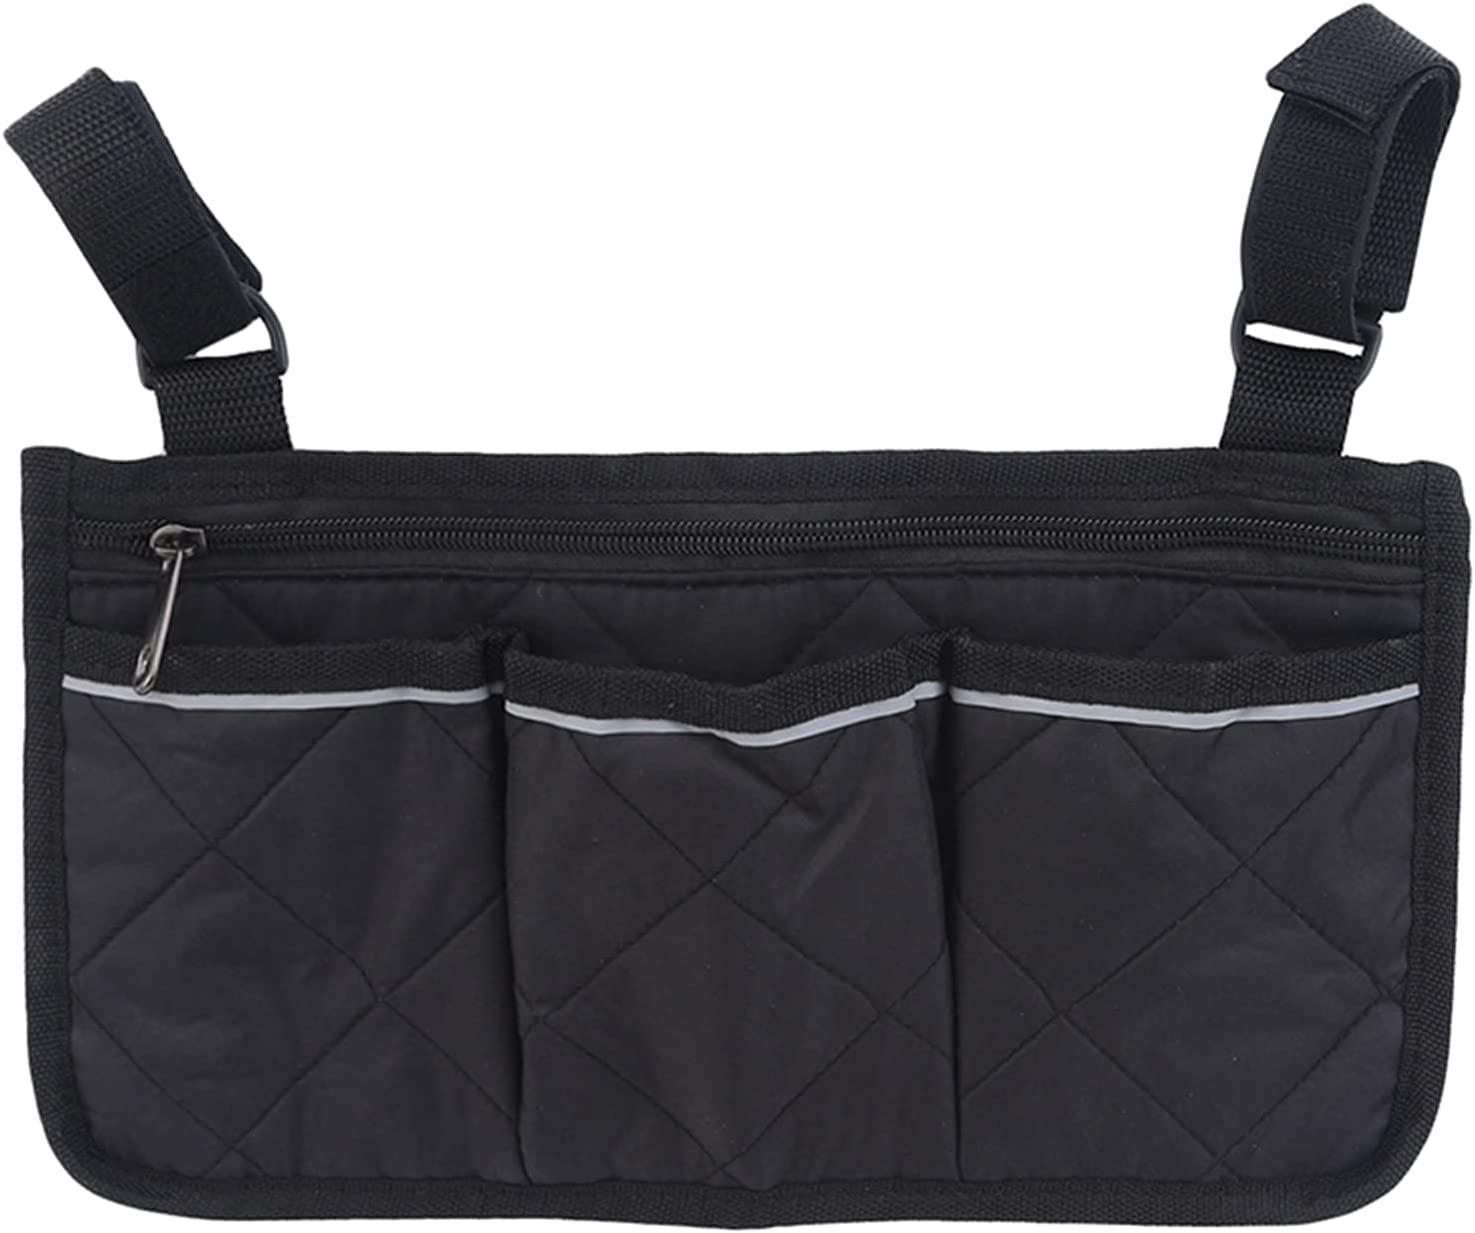 Sevenfly Bargain Wheelchair Side Organizer Storage for Pouch Max 75% OFF Back Bags o